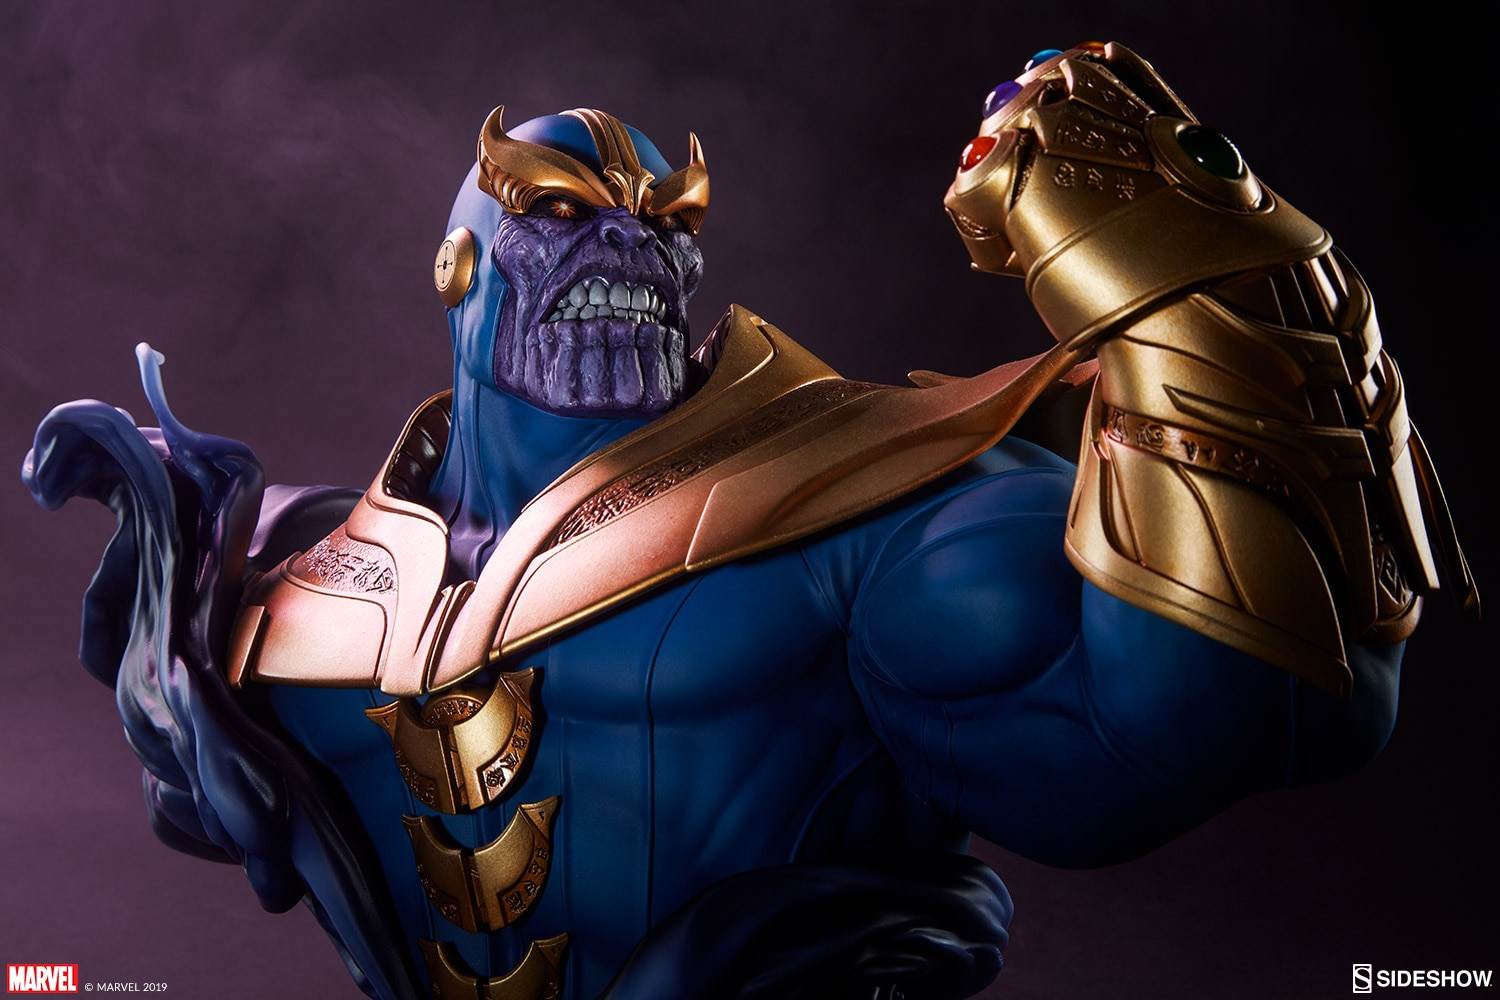 Pre-Order Sideshow Marvel Thanos Bust